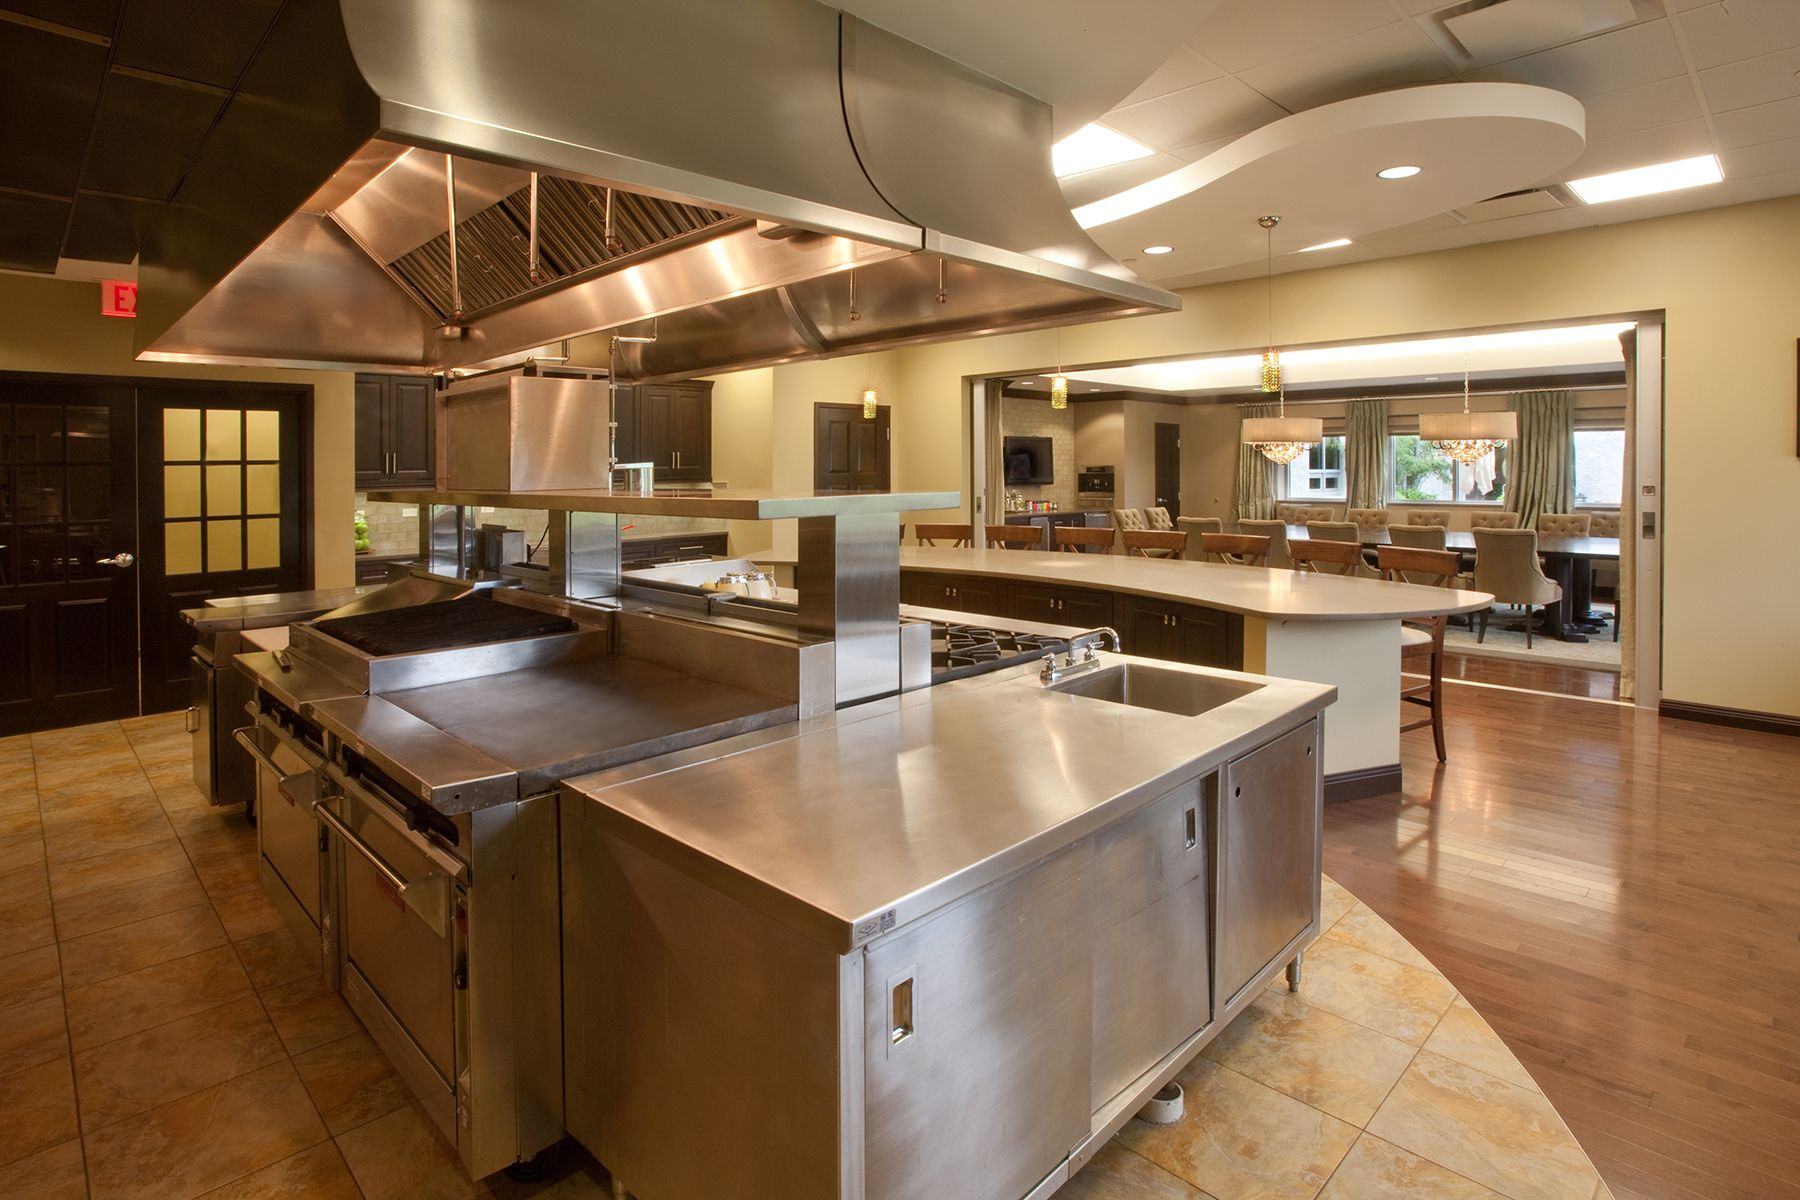 Commercial Home Kitchen Design